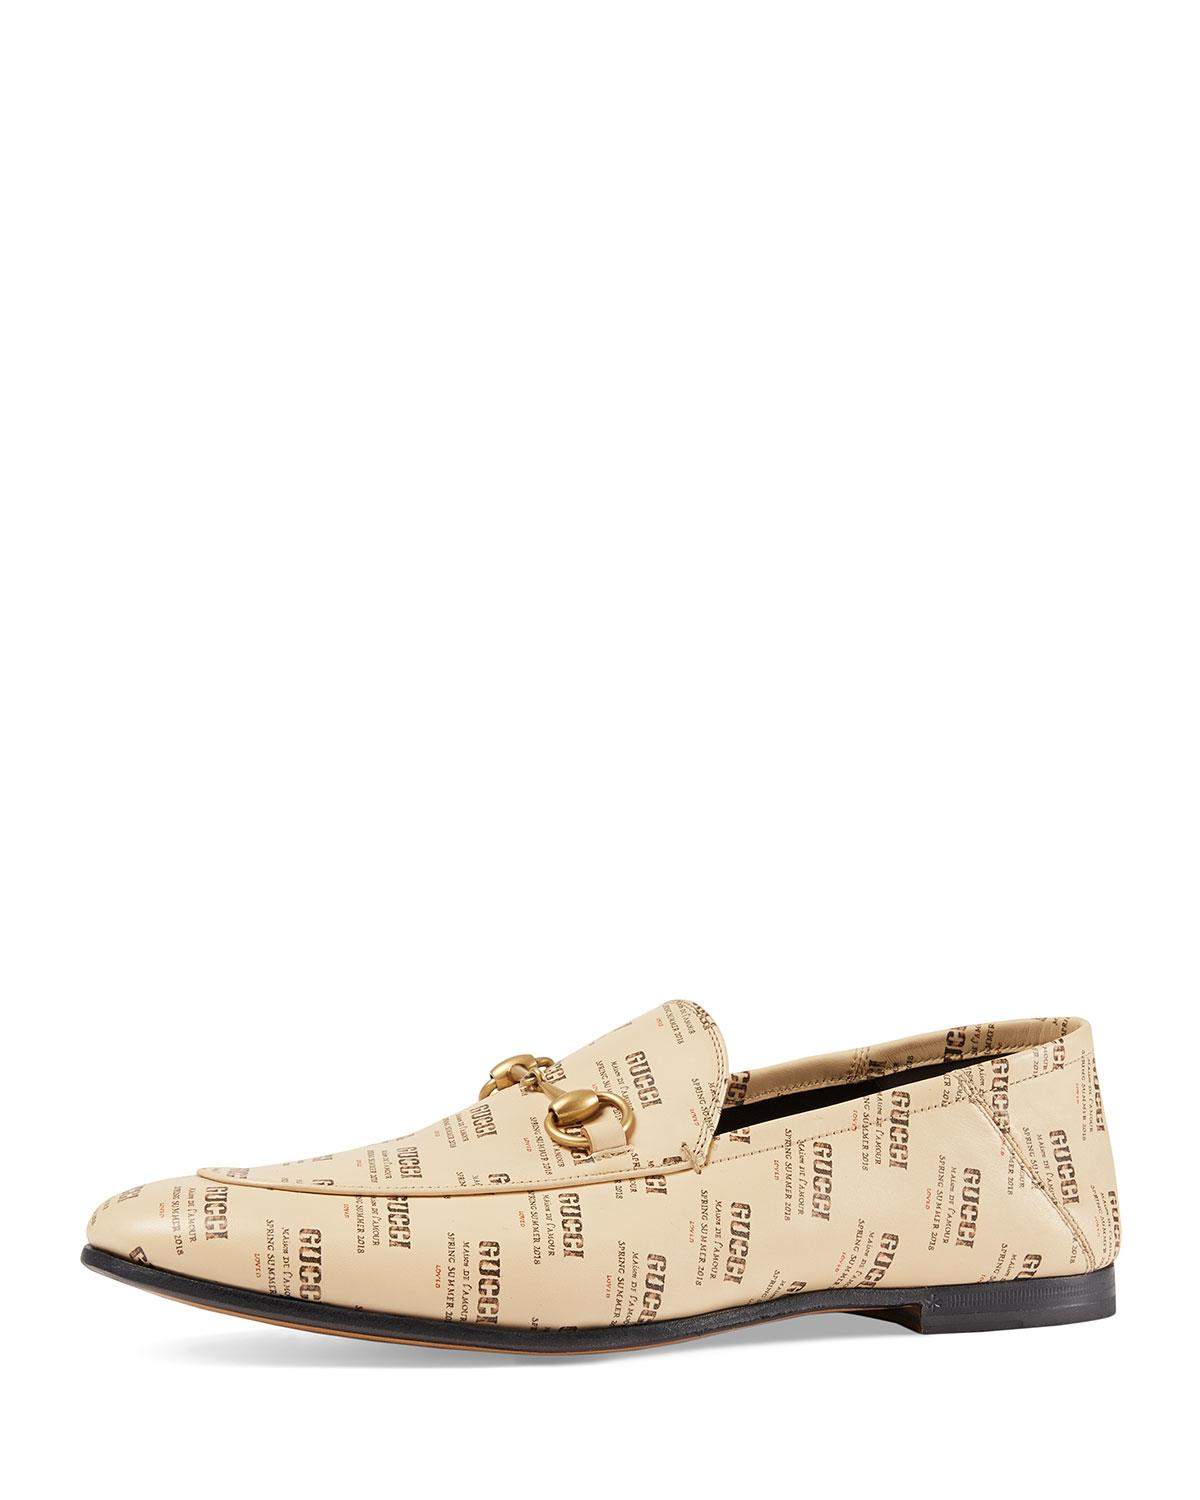 b4007fd6019 Gucci - Natural Leather Invite Print Loafer for Men - Lyst. View fullscreen